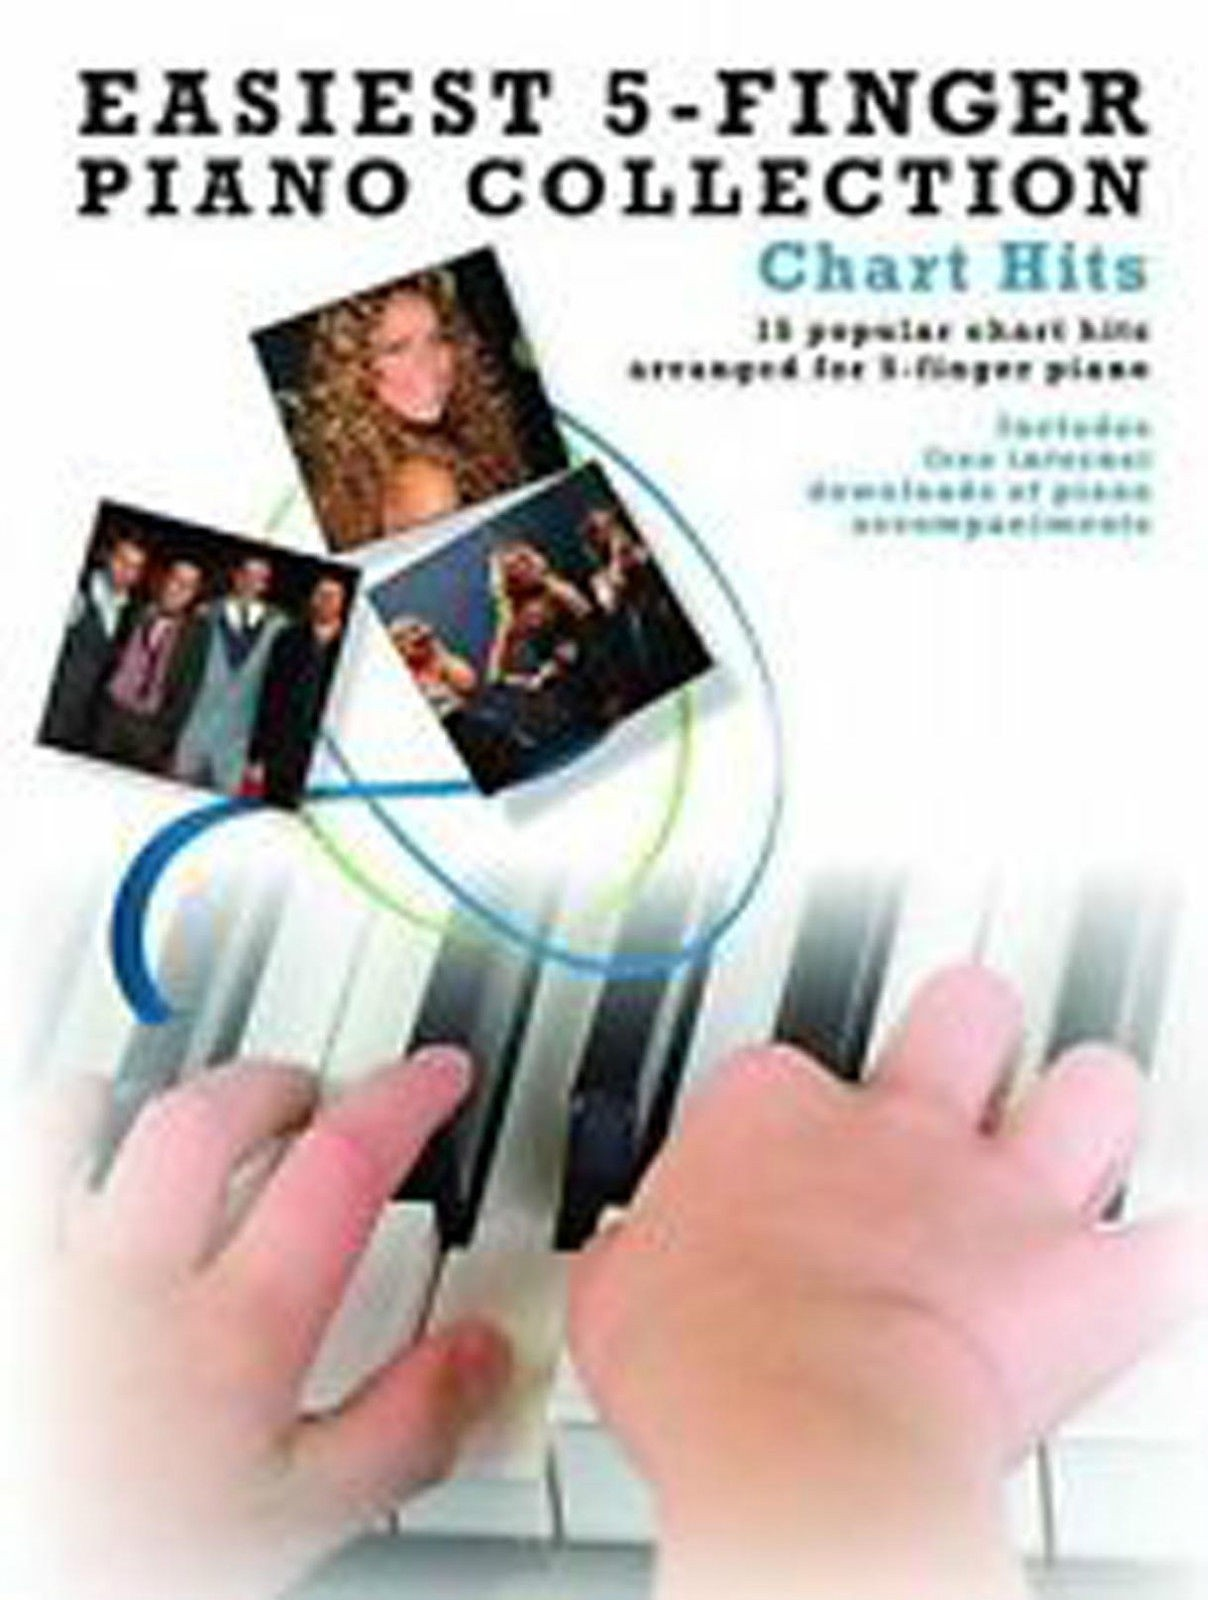 Easiest 5-Finger Piano Collection Chart Hits Book B33 S89